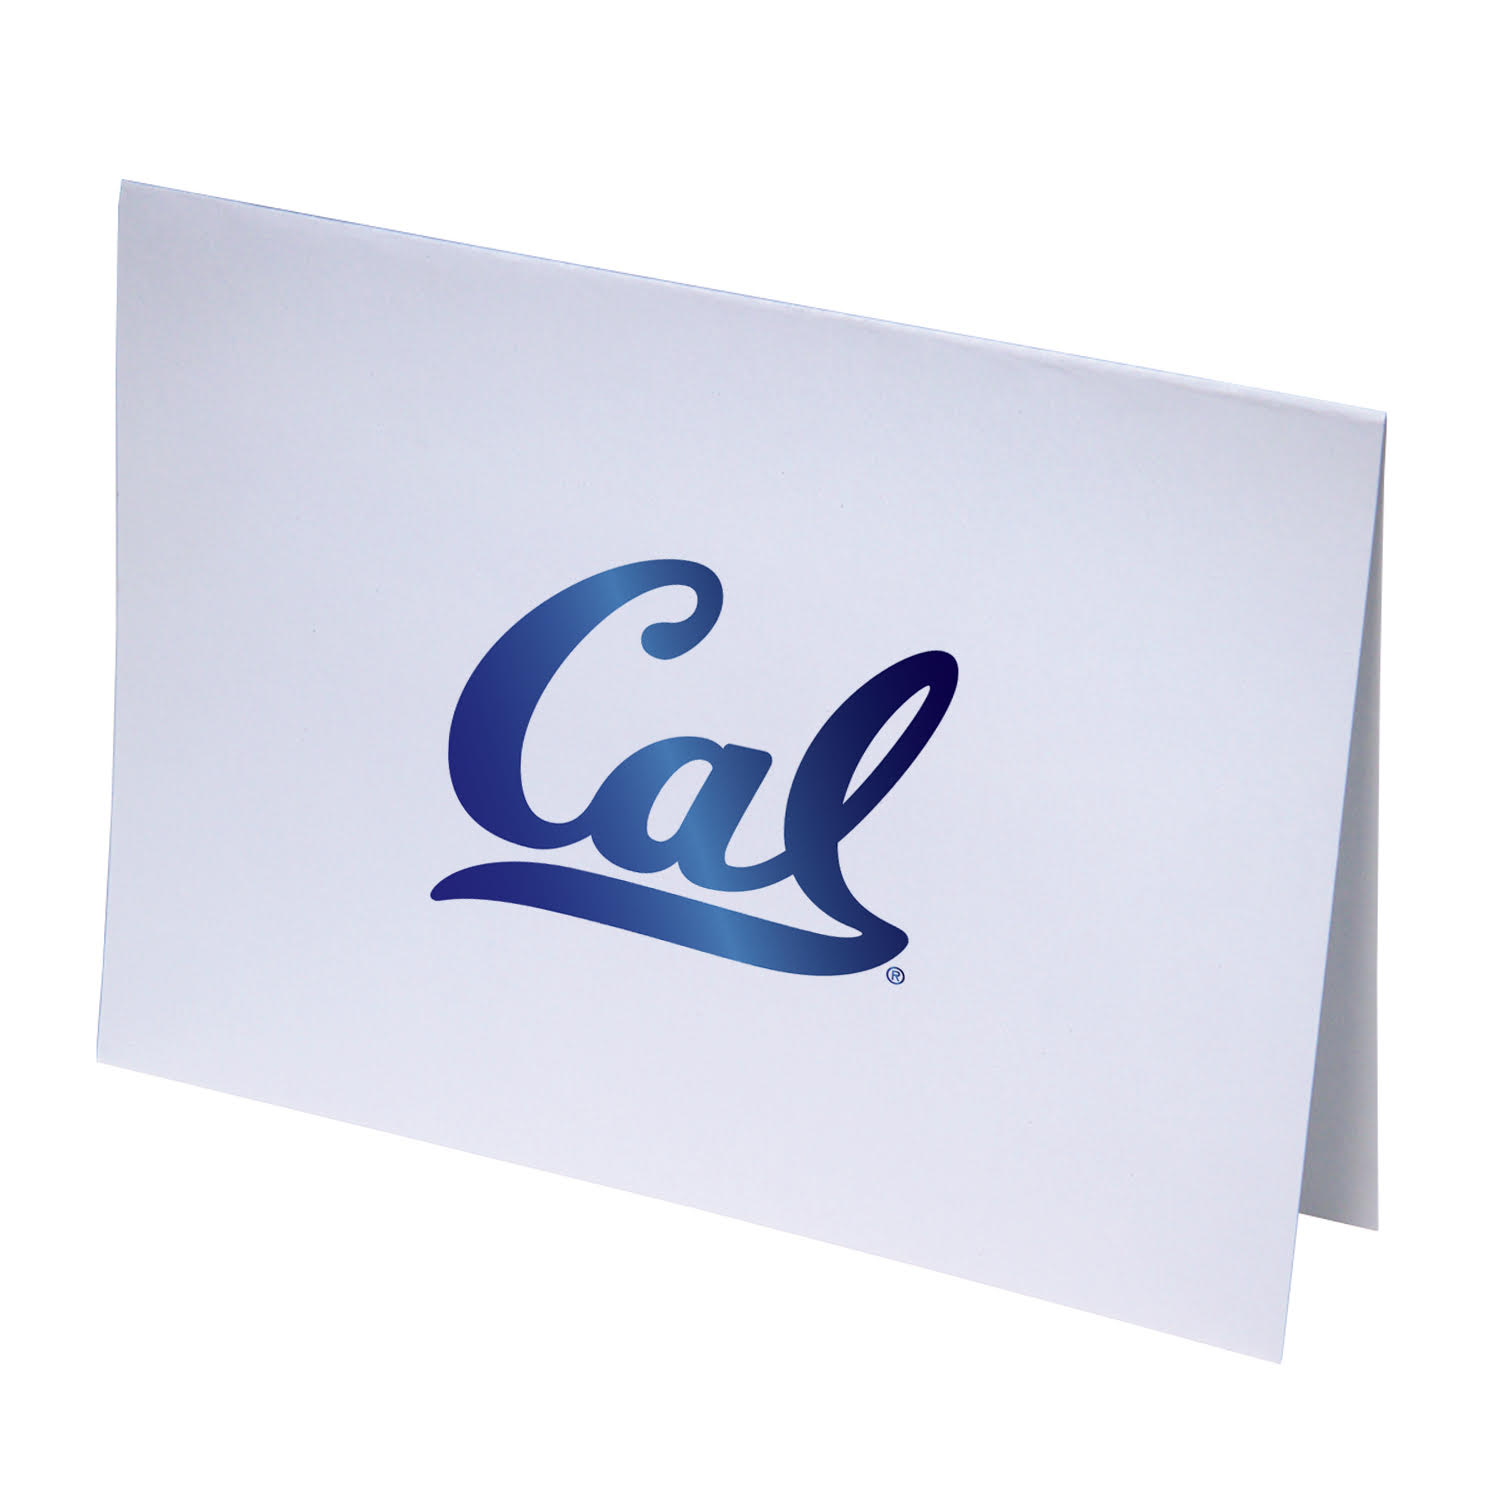 University of California Berkeley Cal Logo Blank Notecards 10 Pack